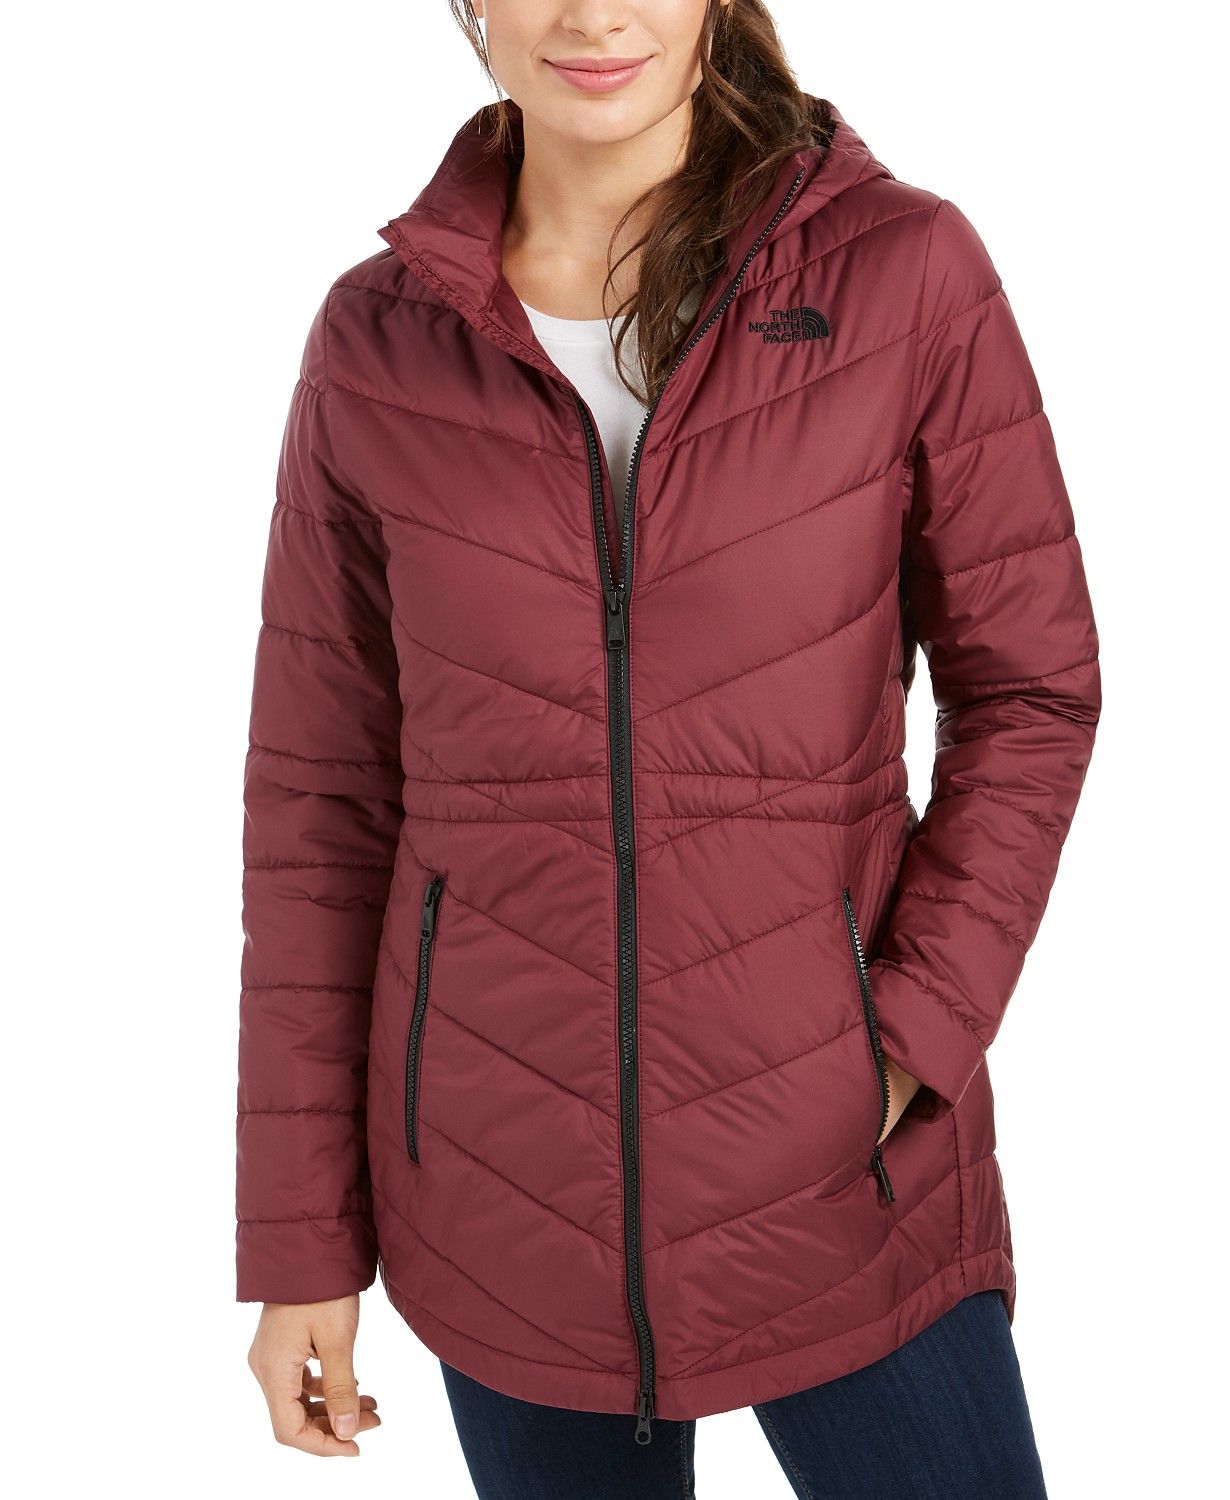 The North Face 25% OFF!Get $10 Macy`s Money for every $50 spent, max. $40